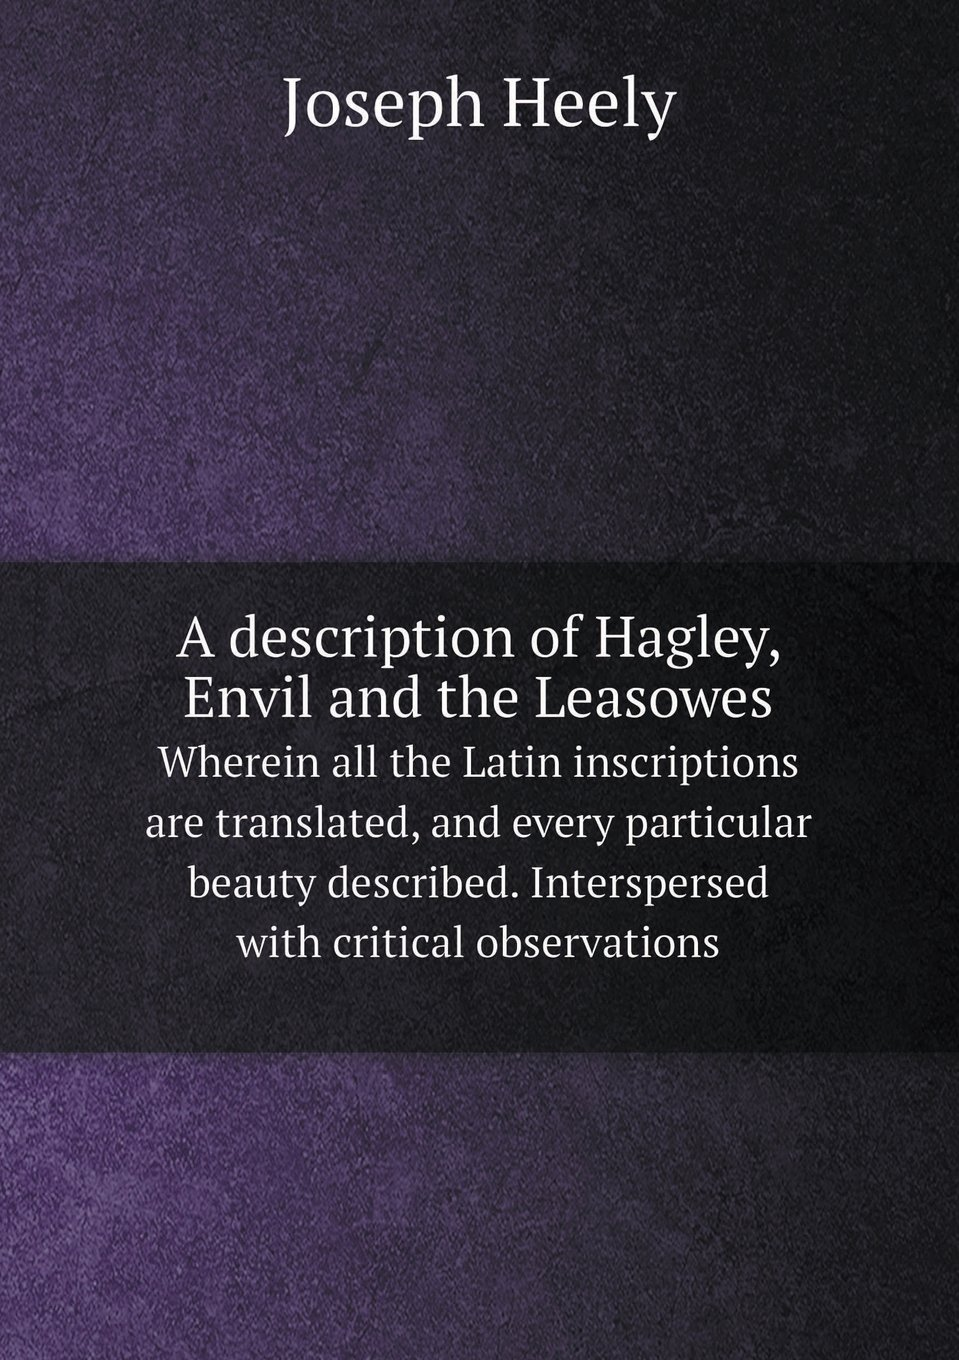 A description of Hagley, Envil and the Leasowes Wherein all the Latin inscriptions are translated, and every particular beauty described. Interspersed with critical observations PDF